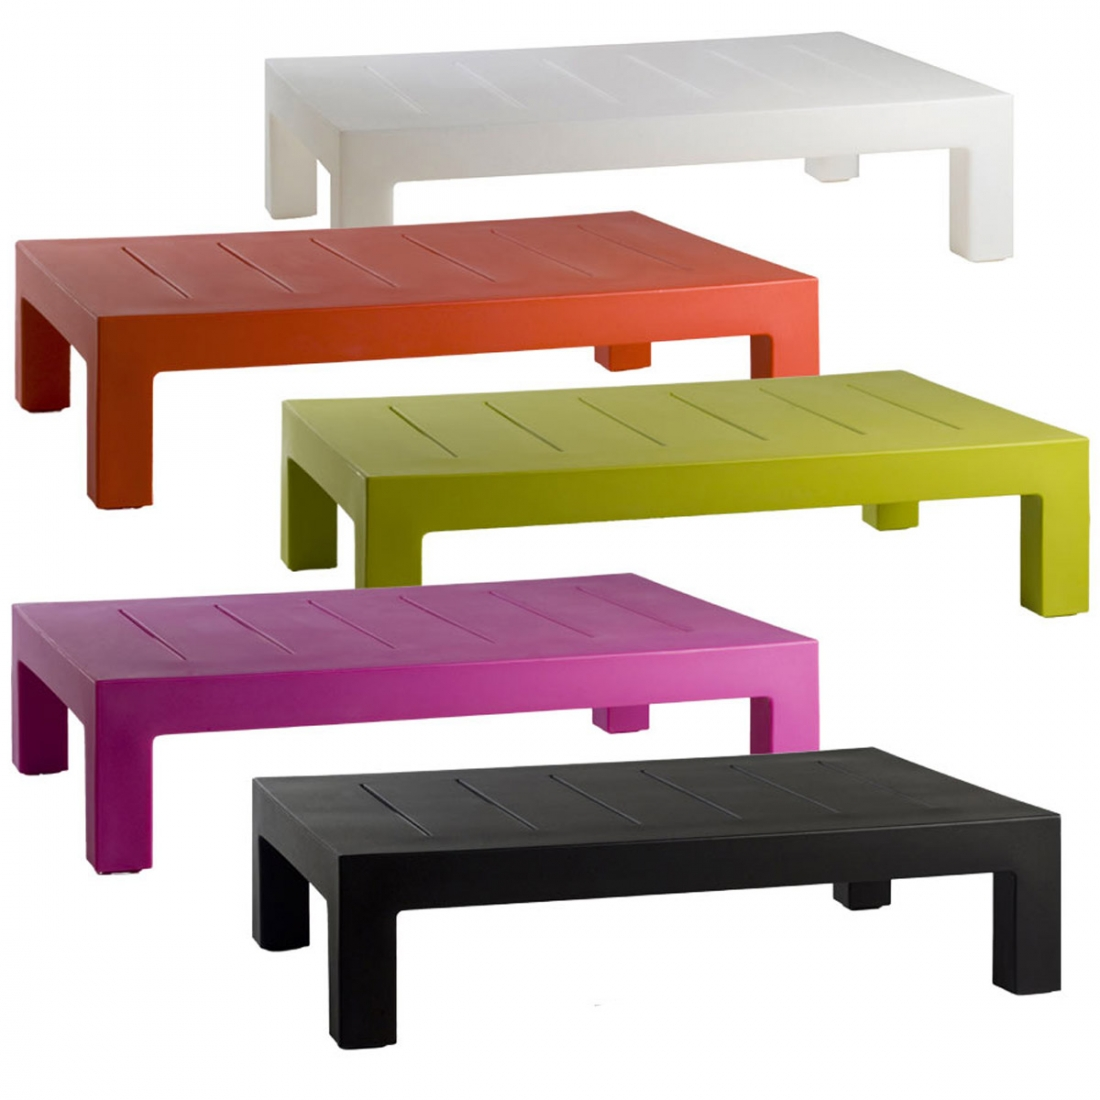 Table basse design d ext rieur jut par vondom - Table de salon de jardin plastique ...